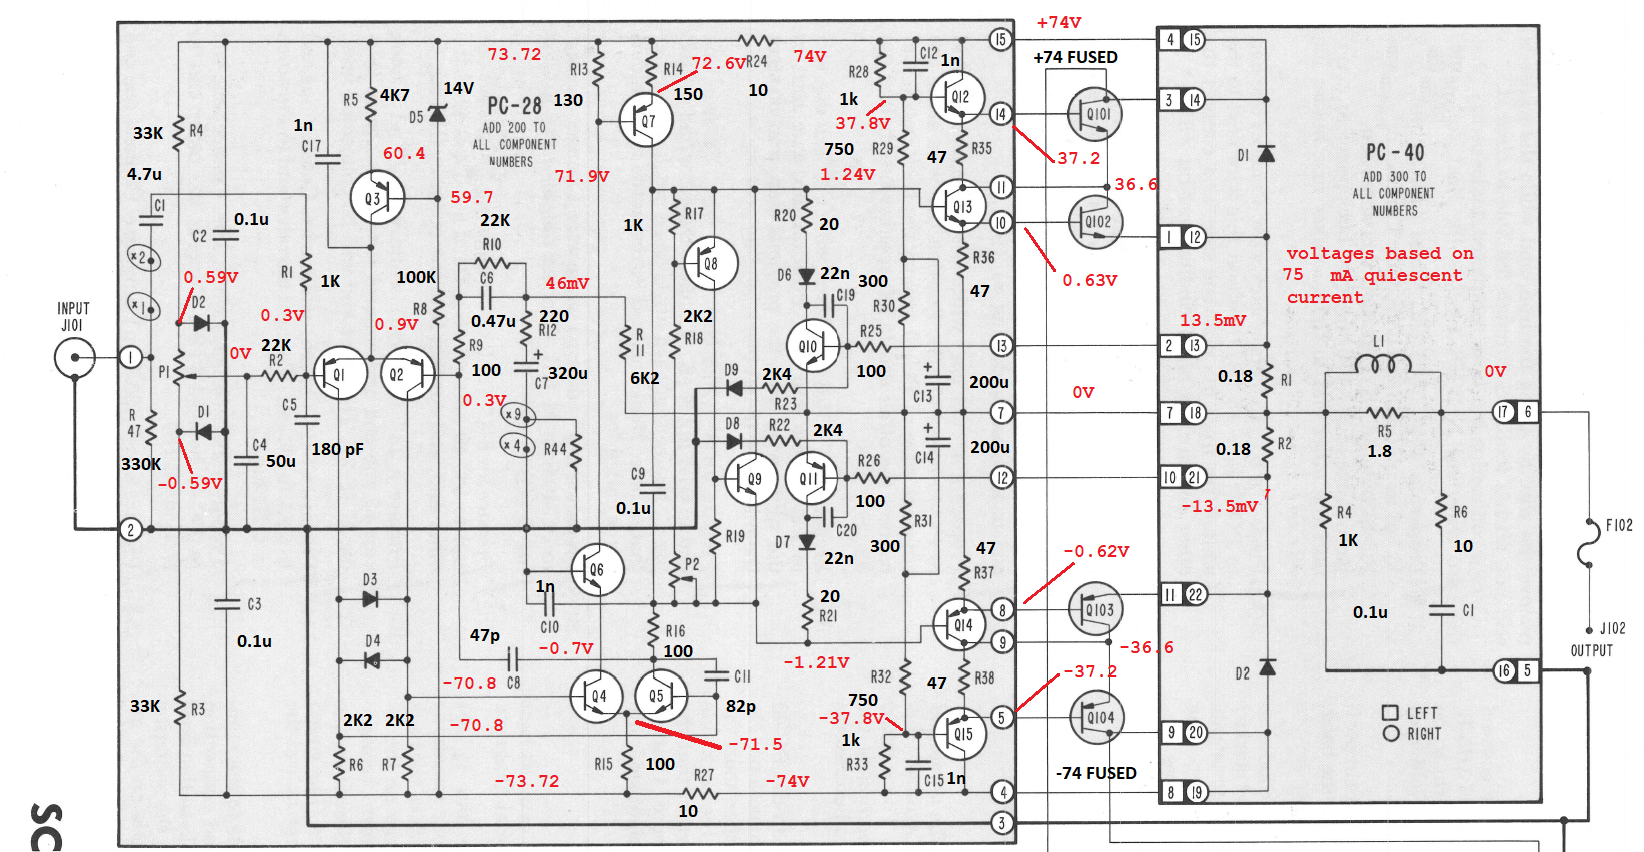 hight resolution of stereo 410 schematic with annotated values and voltages